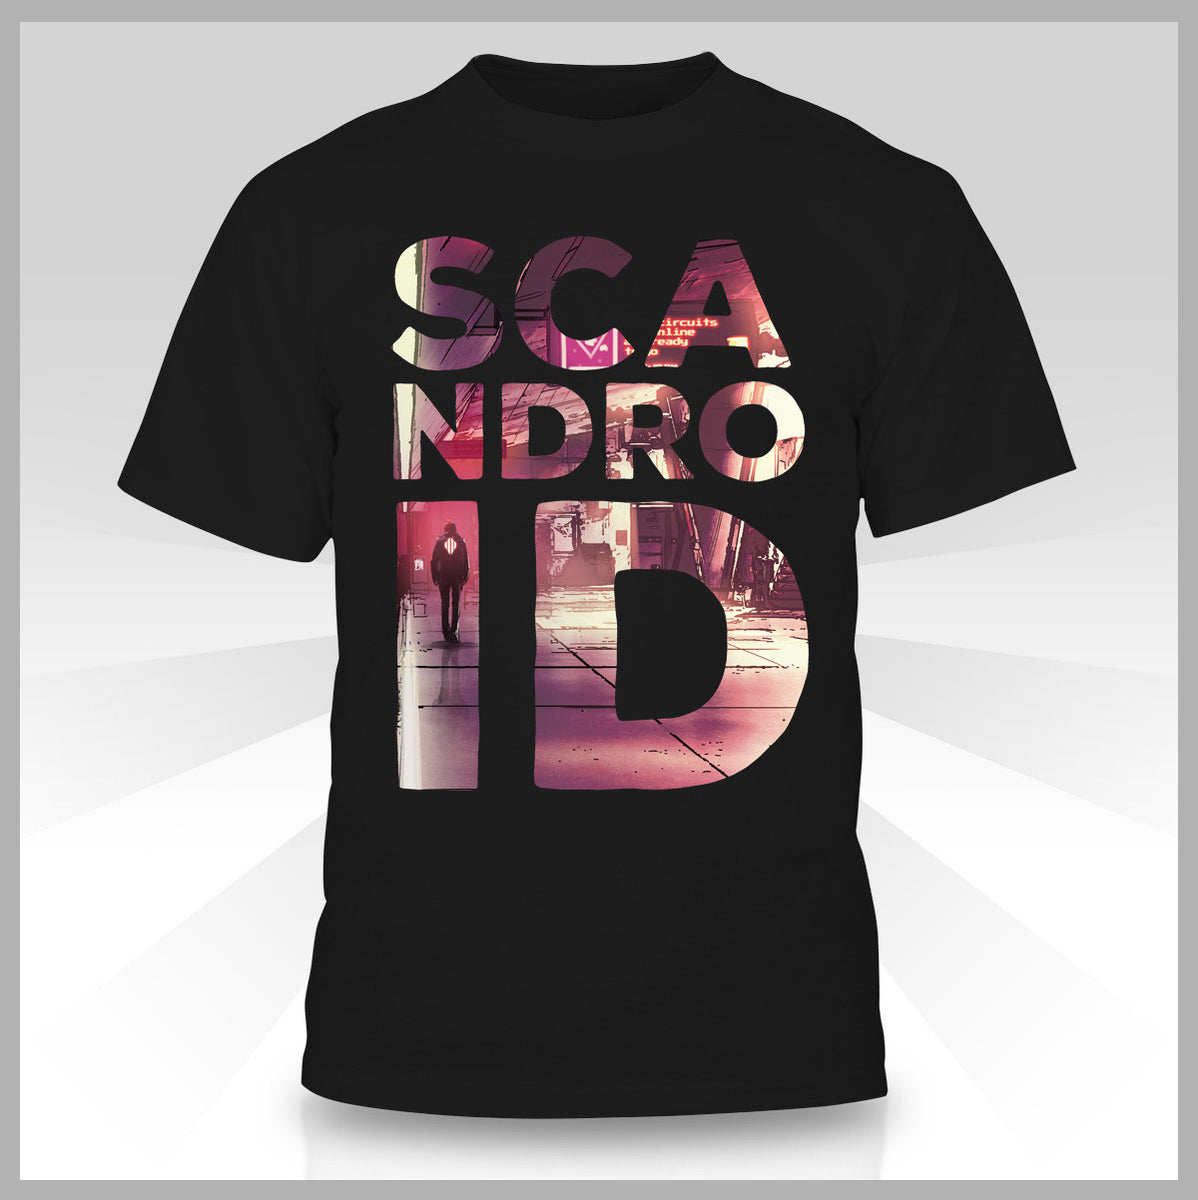 Scandroid - New York City Nights T-Shirt – FiXT Store 86d15c0457f